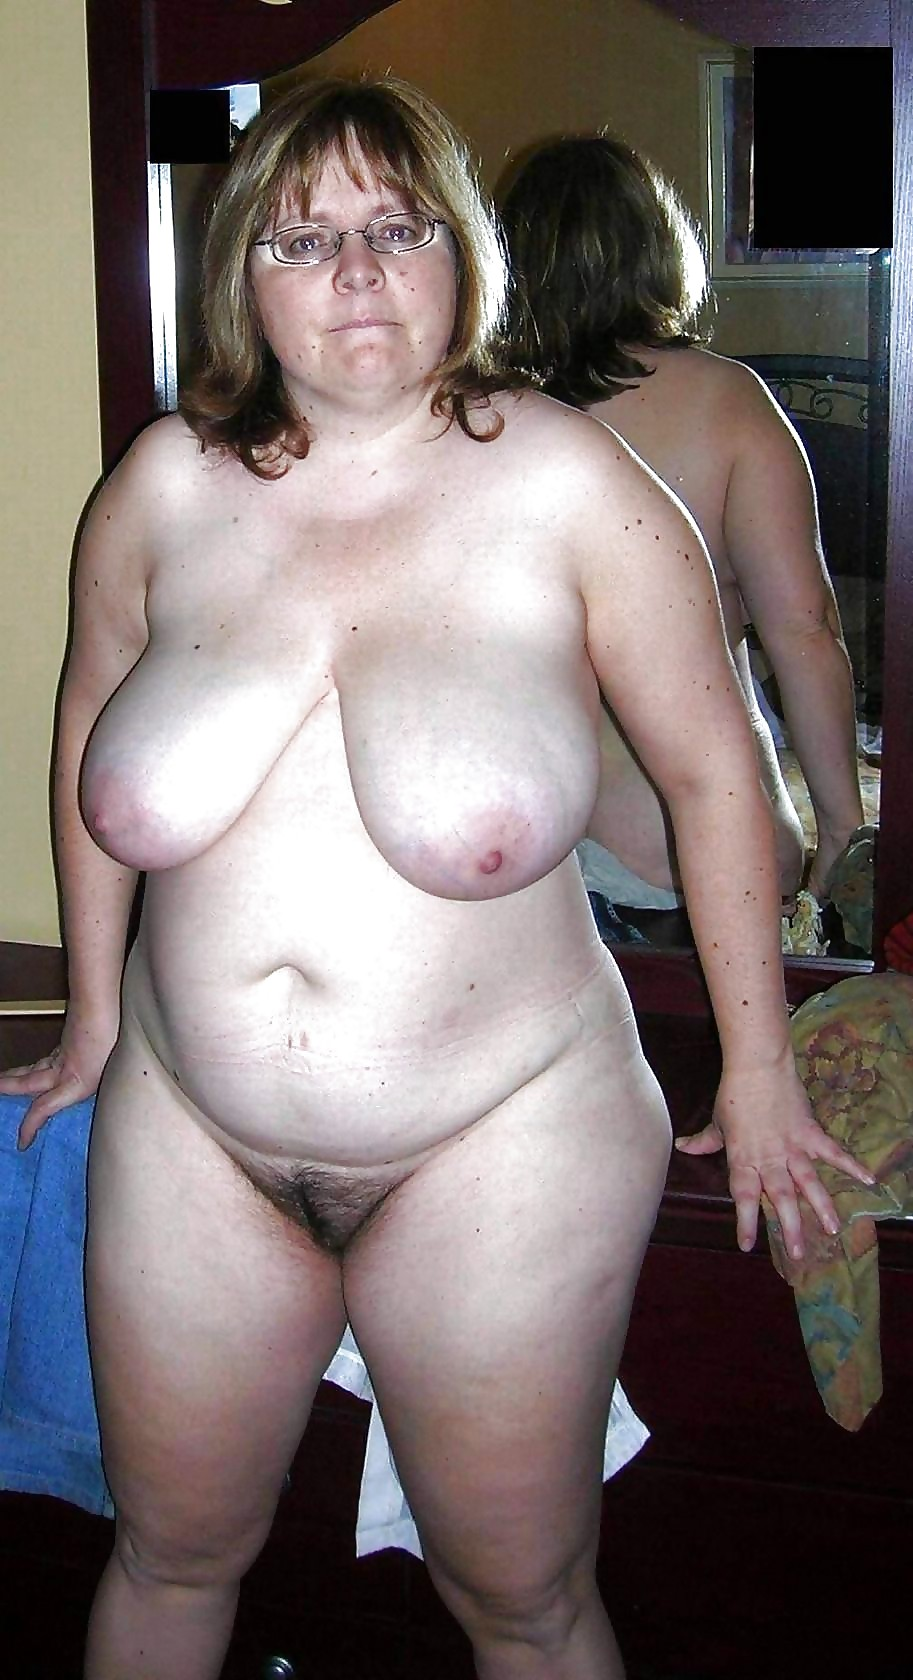 BBW, chubby, mom, granny, hairy, latin, ebony #35665059